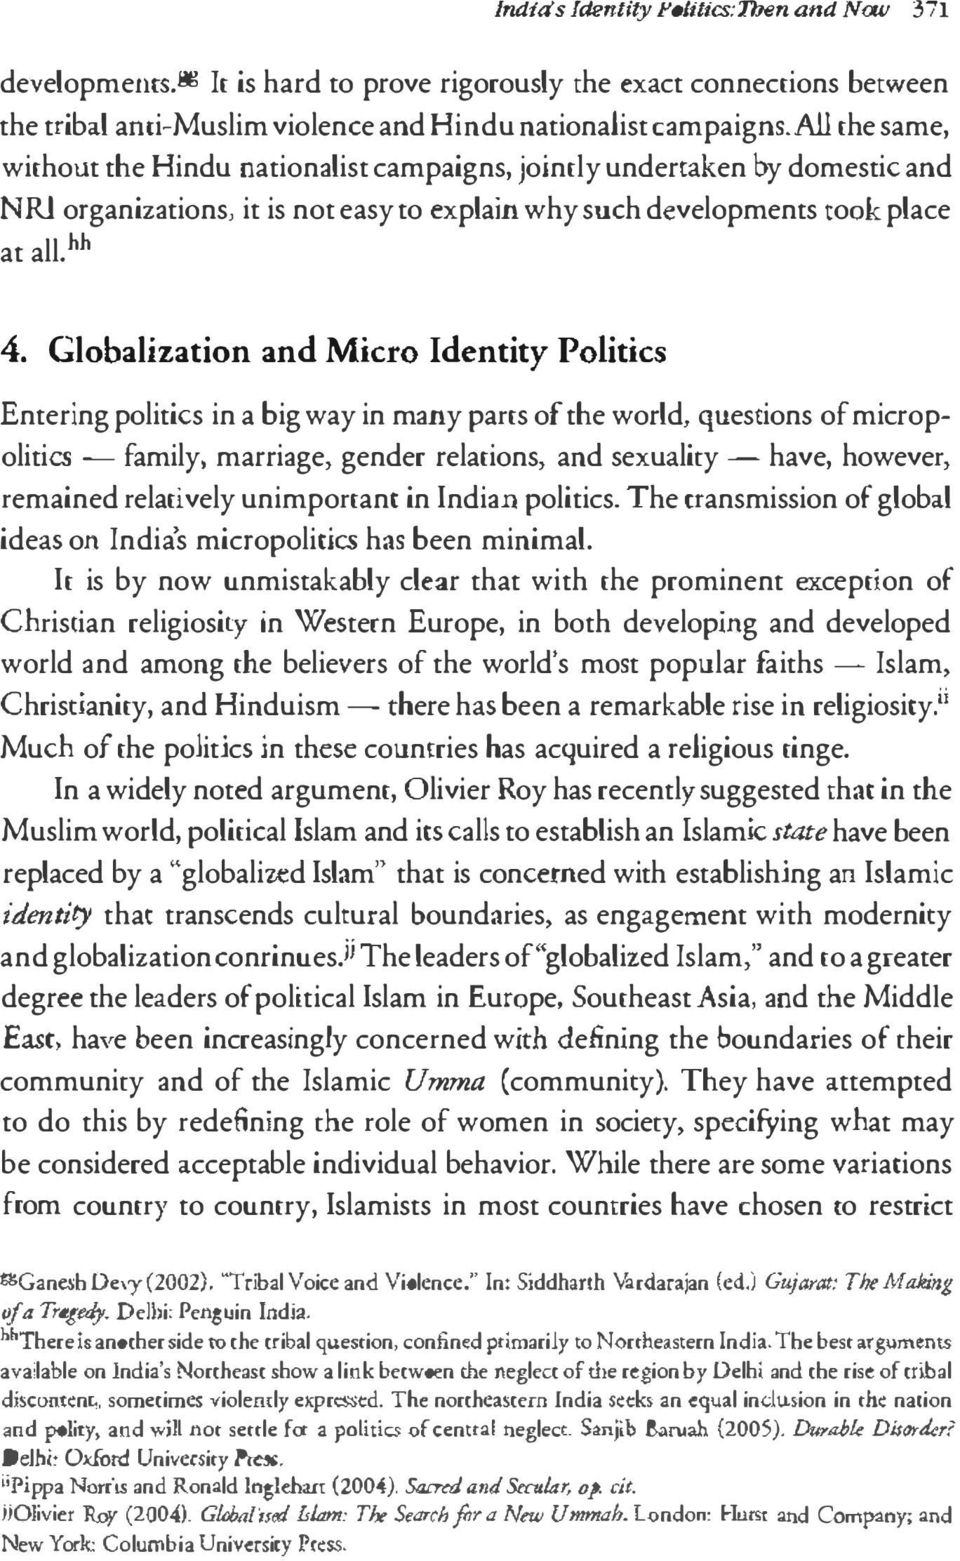 Globalization and Micro Identity Politics Entering politics in a big way in many parts of the world, questions of micro p olitics - family, marriage, gender relations, and sexuality - have, however,